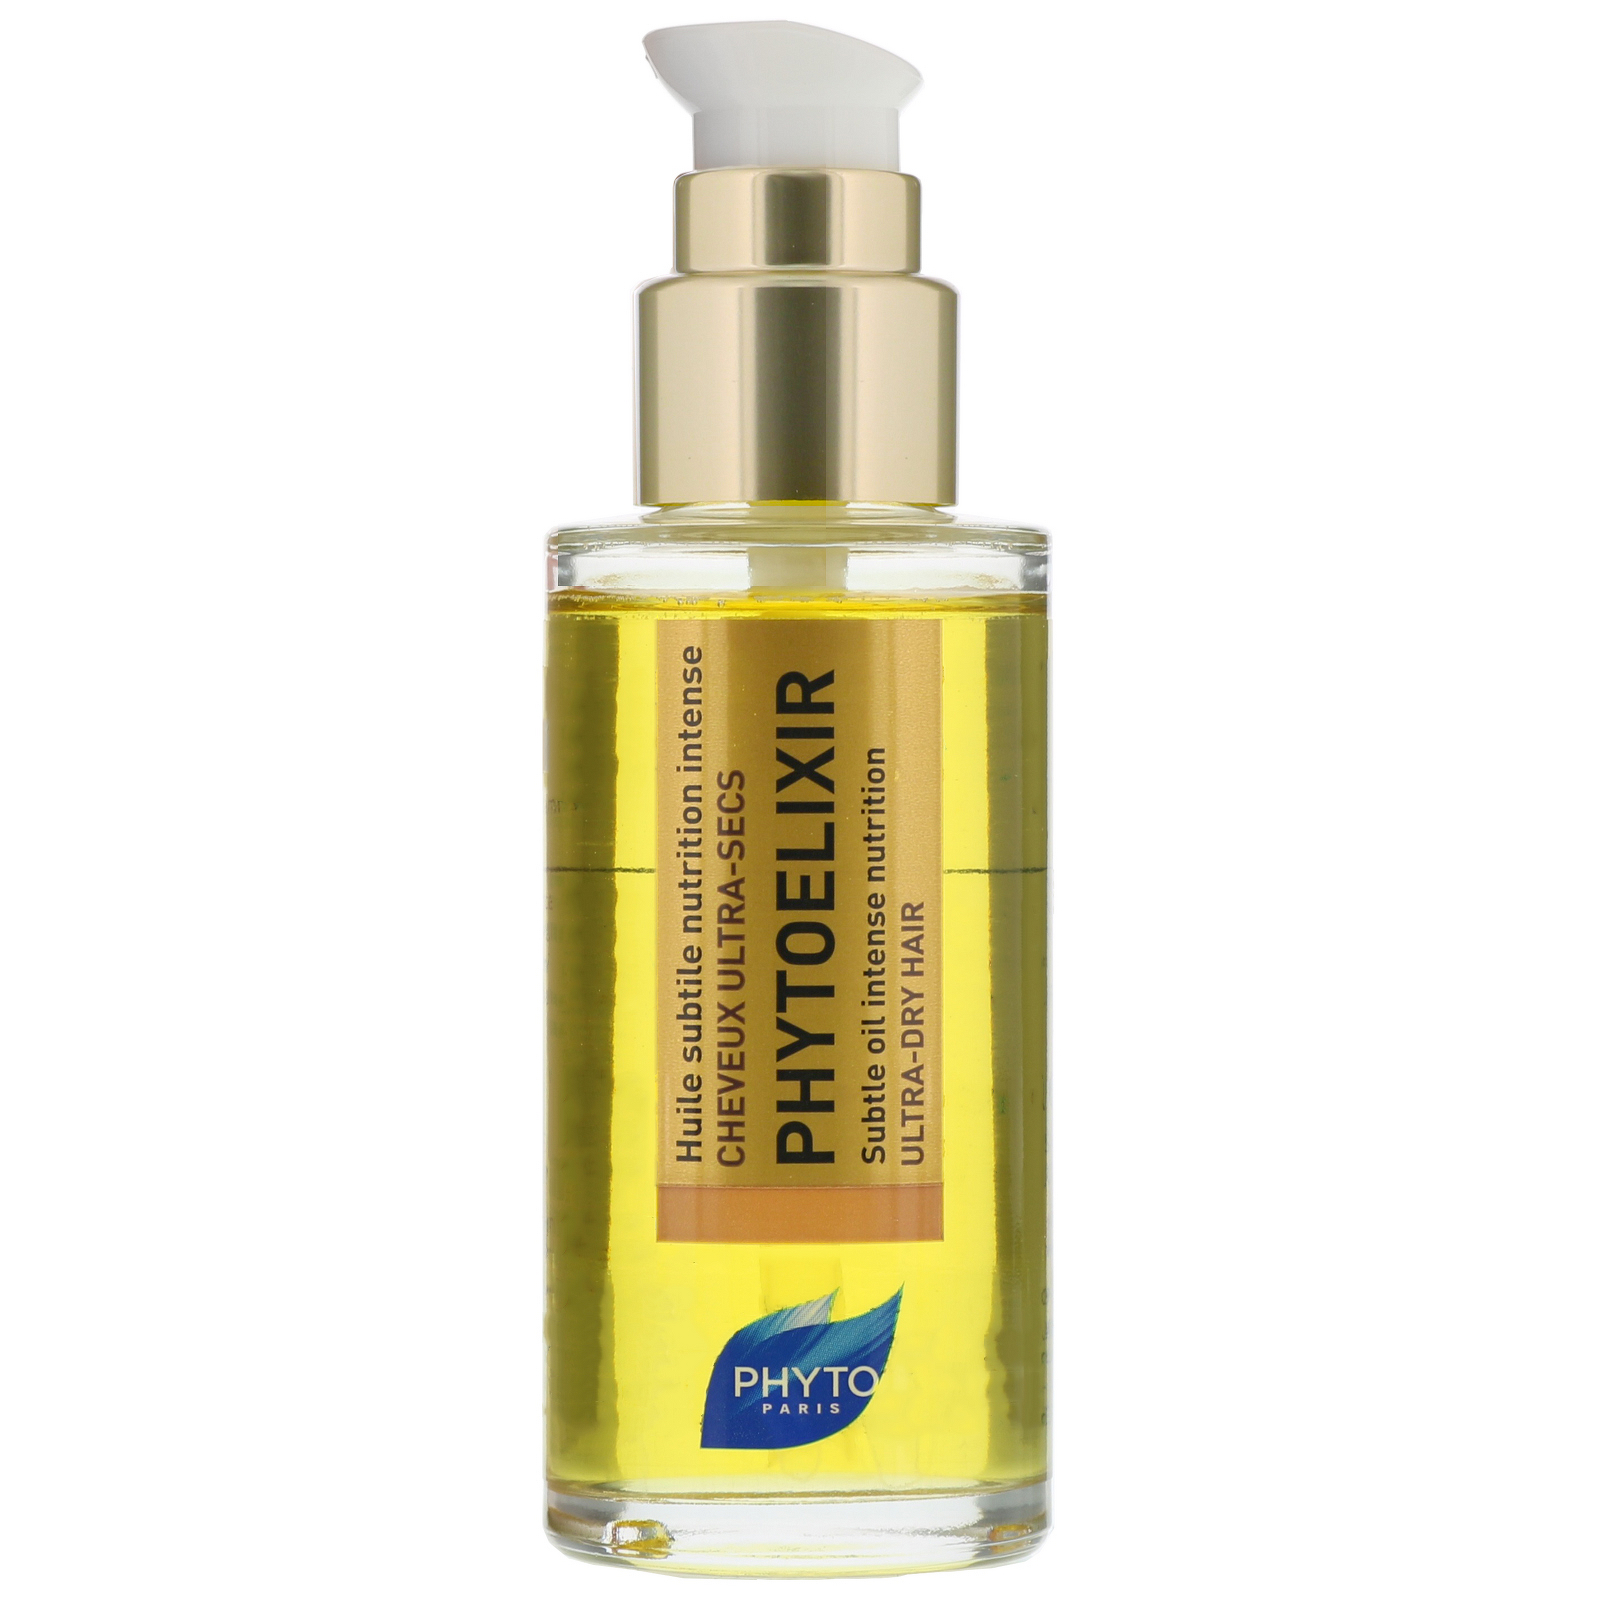 Phyto Phytoelixir Subtle Intense Nutrition Oil, $40